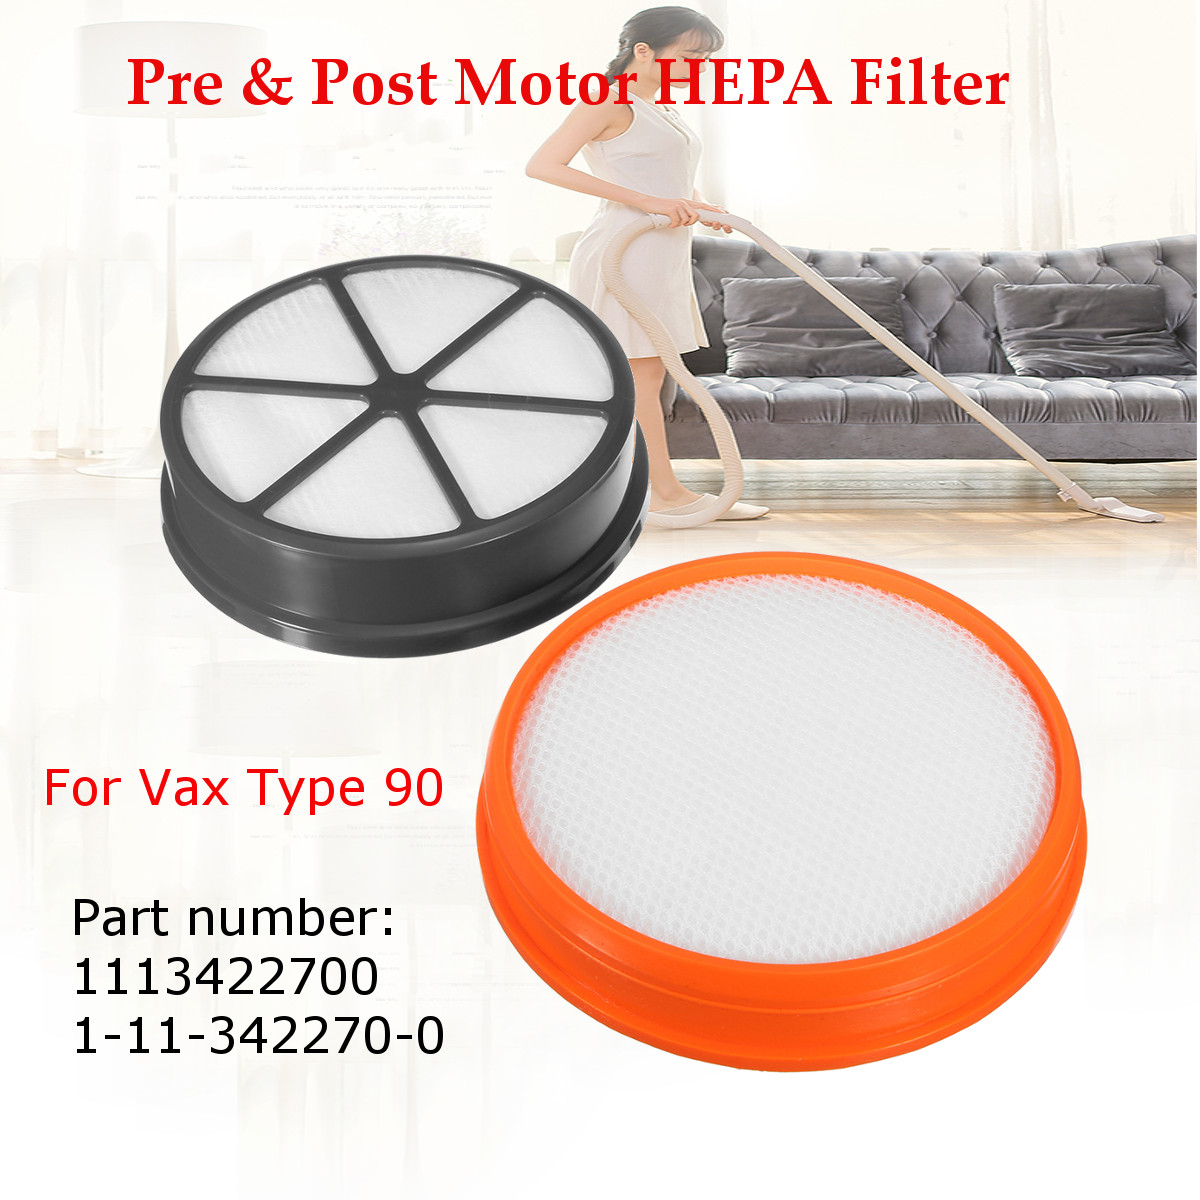 Pre & Post Motor HEPA Filter Set for Vax Mach Air Upright Type 90 Vacuum Cleaner